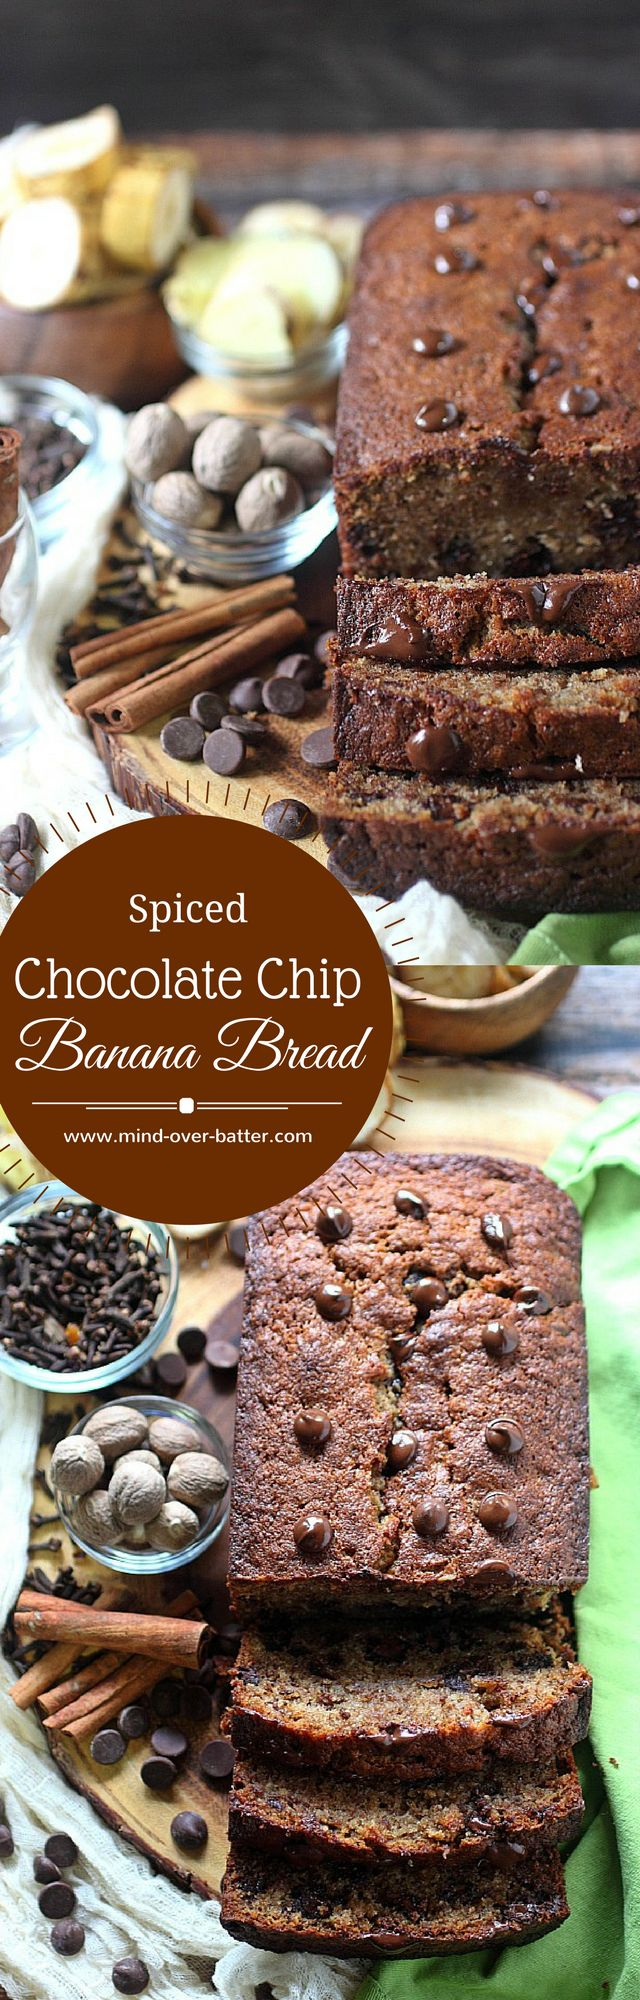 Spiced Chocolate Chip Banana Bread -- www.mind-over-batter.com